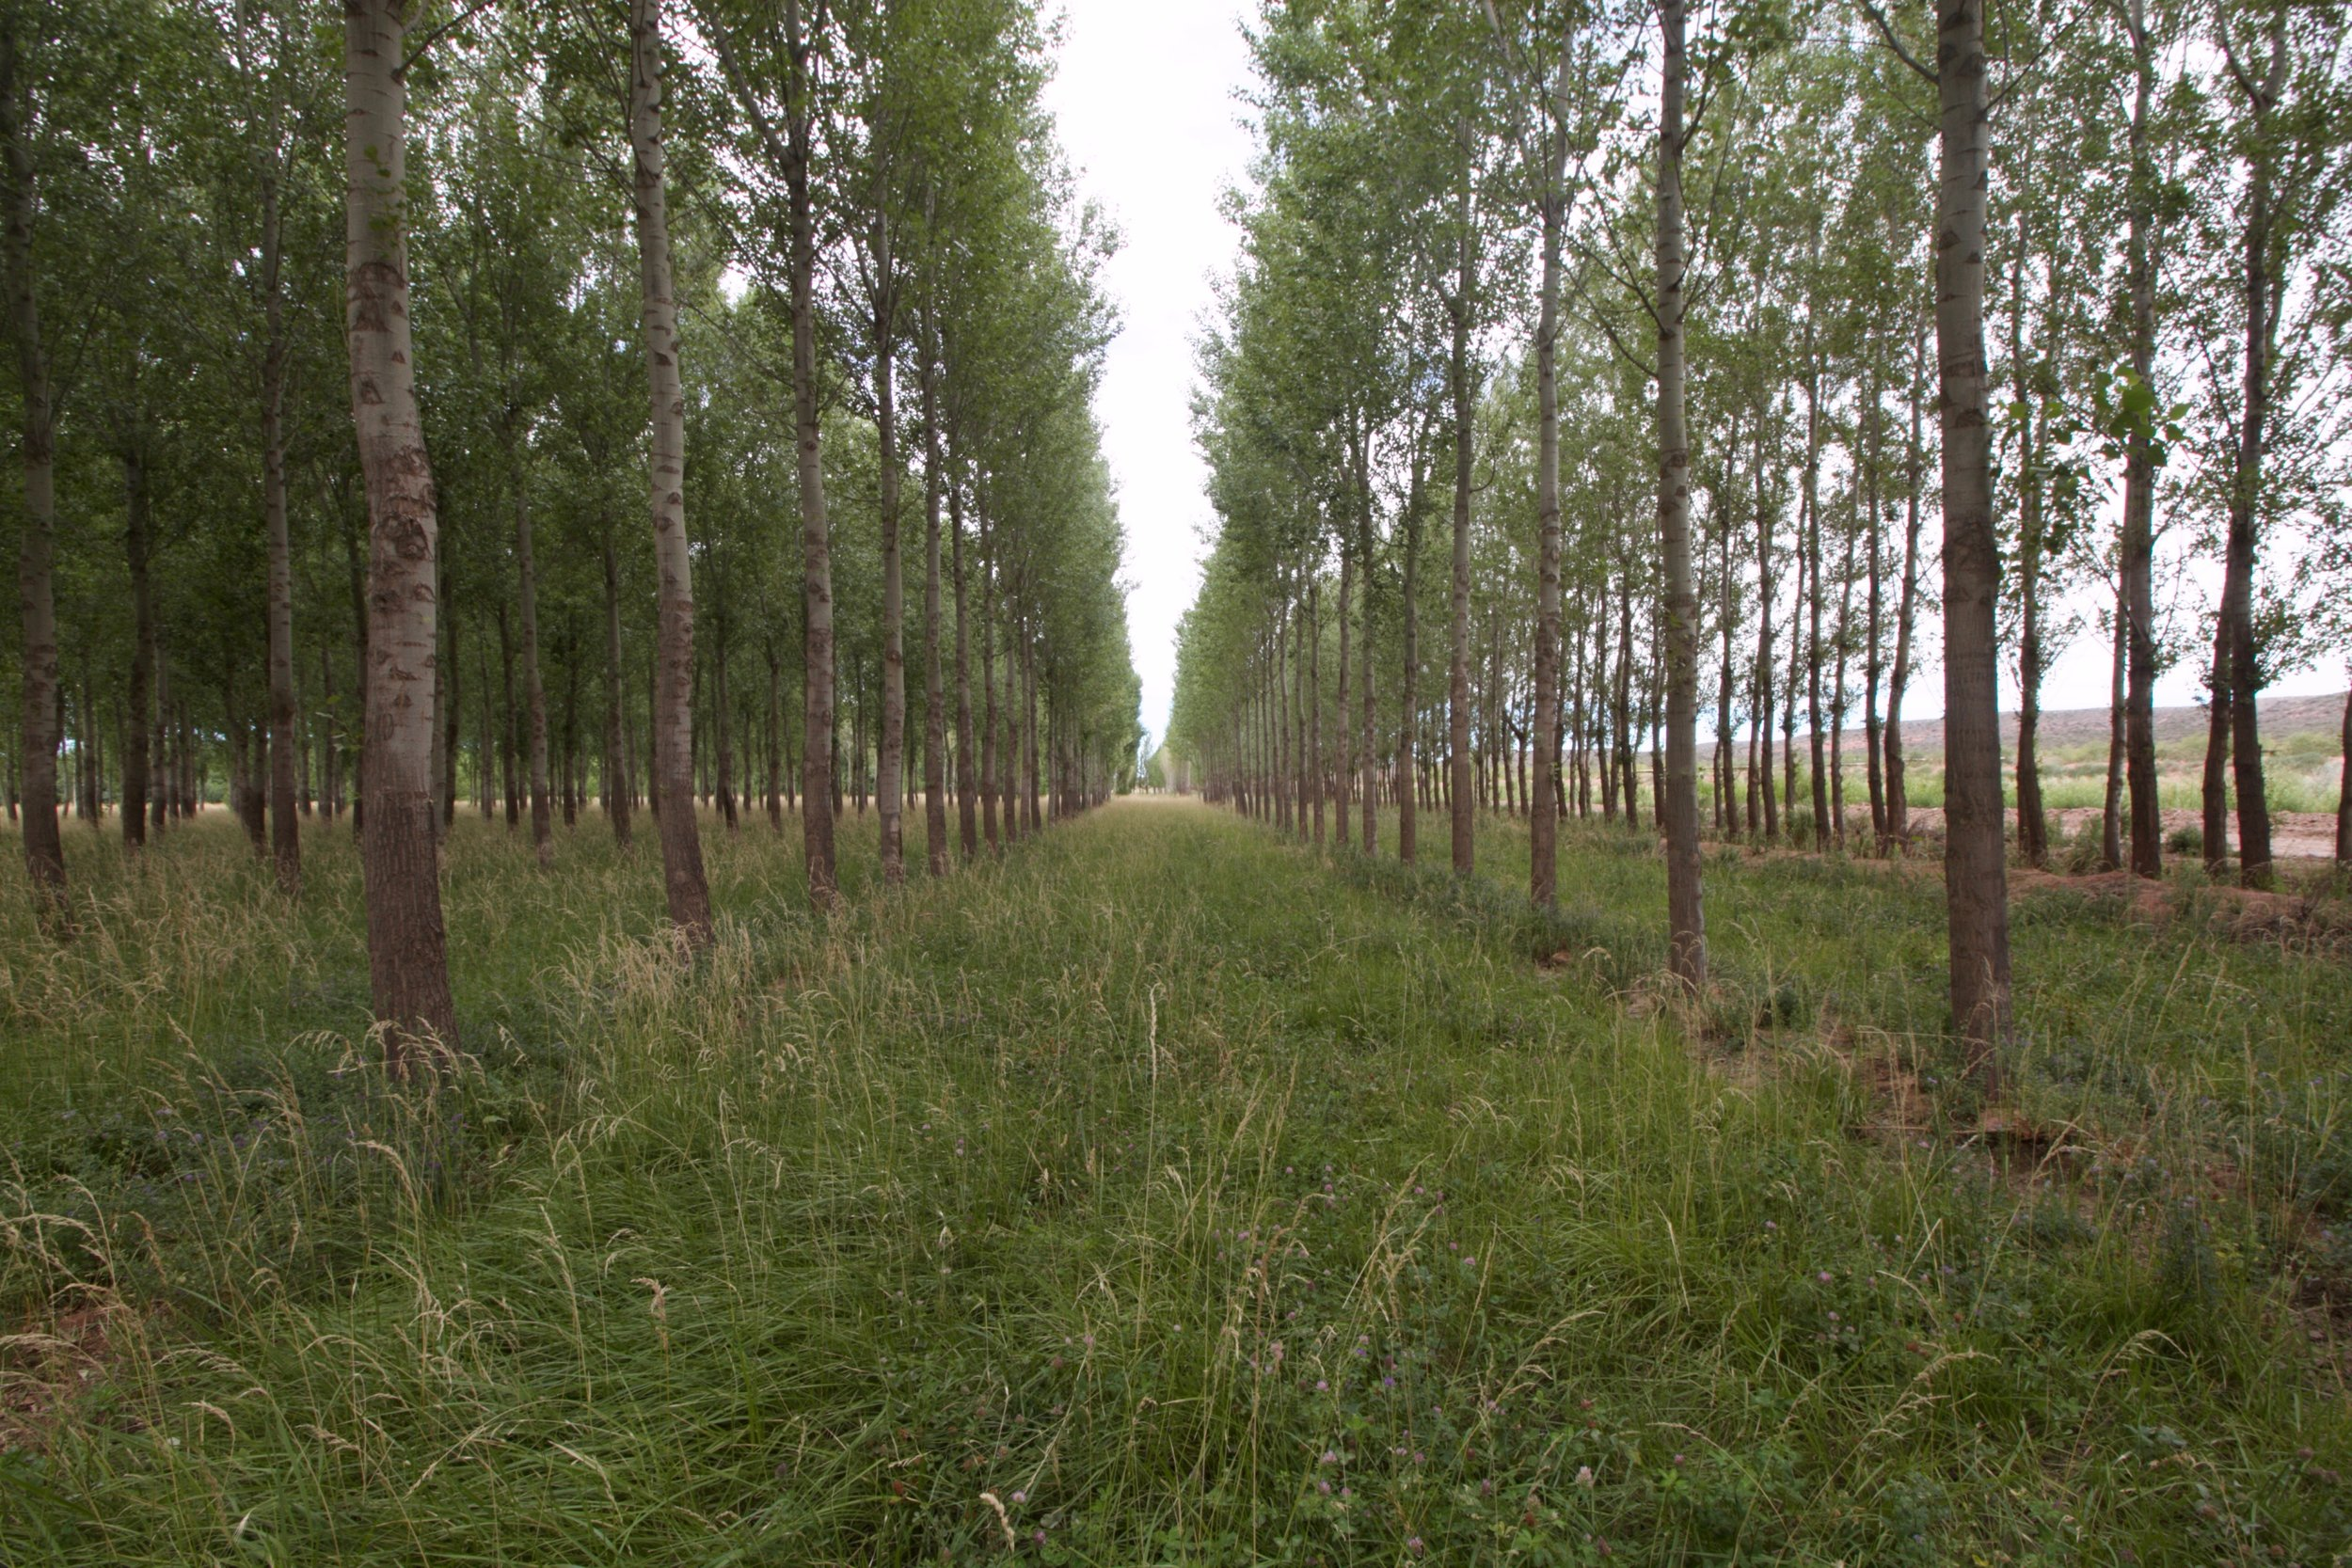 This silvopasture is a widely-spaced poplar plantation that is managed with cattle. It is planted at 8x3 meter (26x10 ft.) spacing: the amount of light that filters through the tree canopy is enough to keep the grass growing, while also providing sufficient shade for the cattle. This system doesn't just cultivate the ground: it takes full advantage of vertical space.